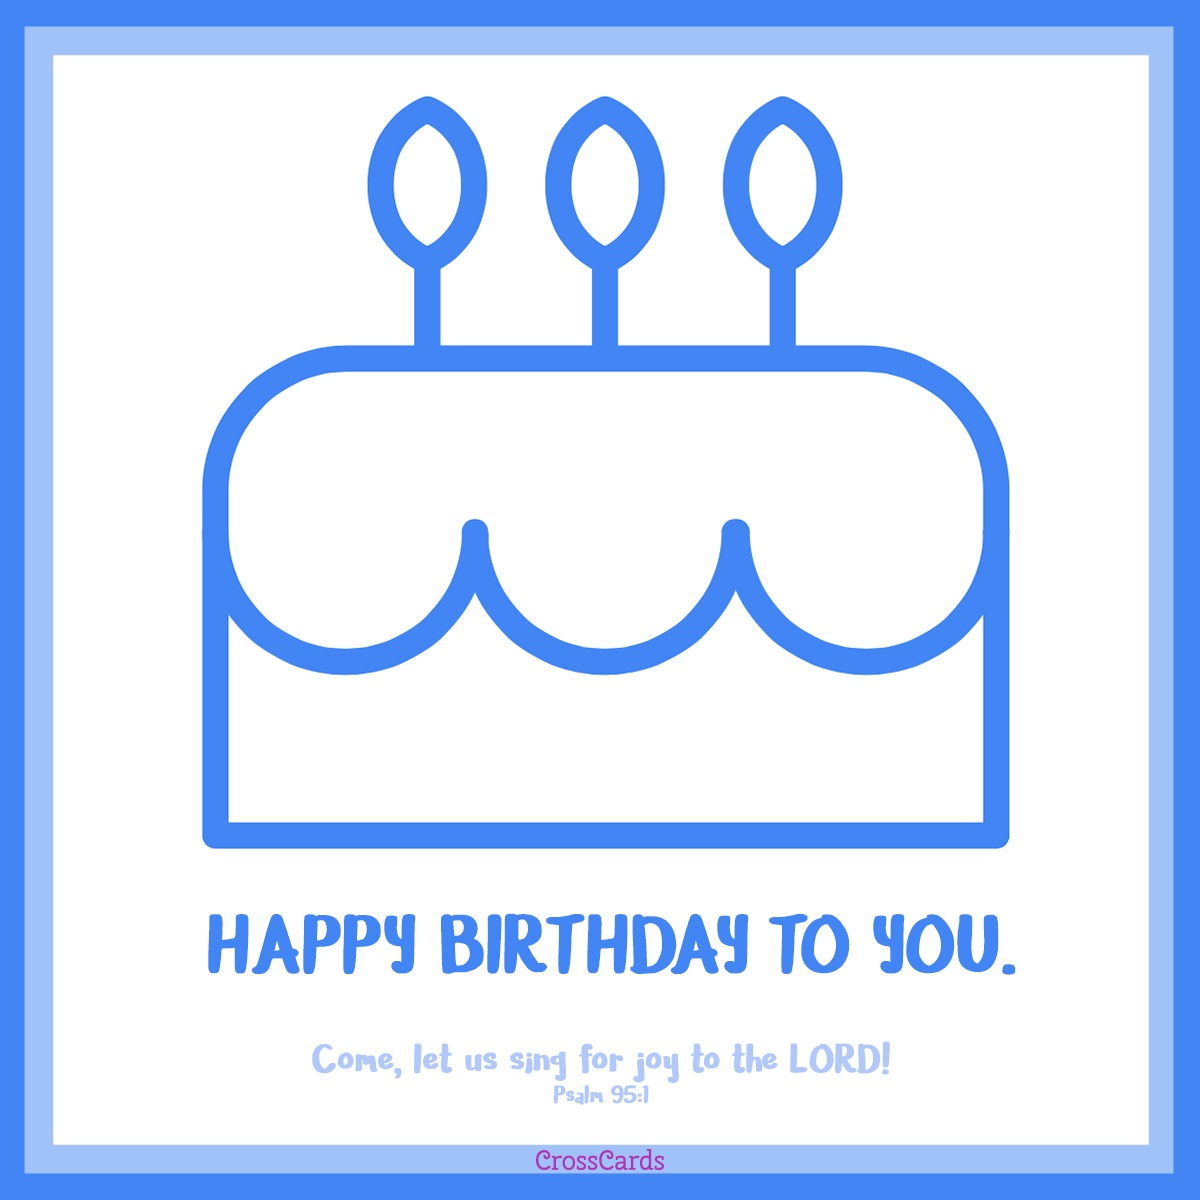 Happy Birthday to You! ecard, online card